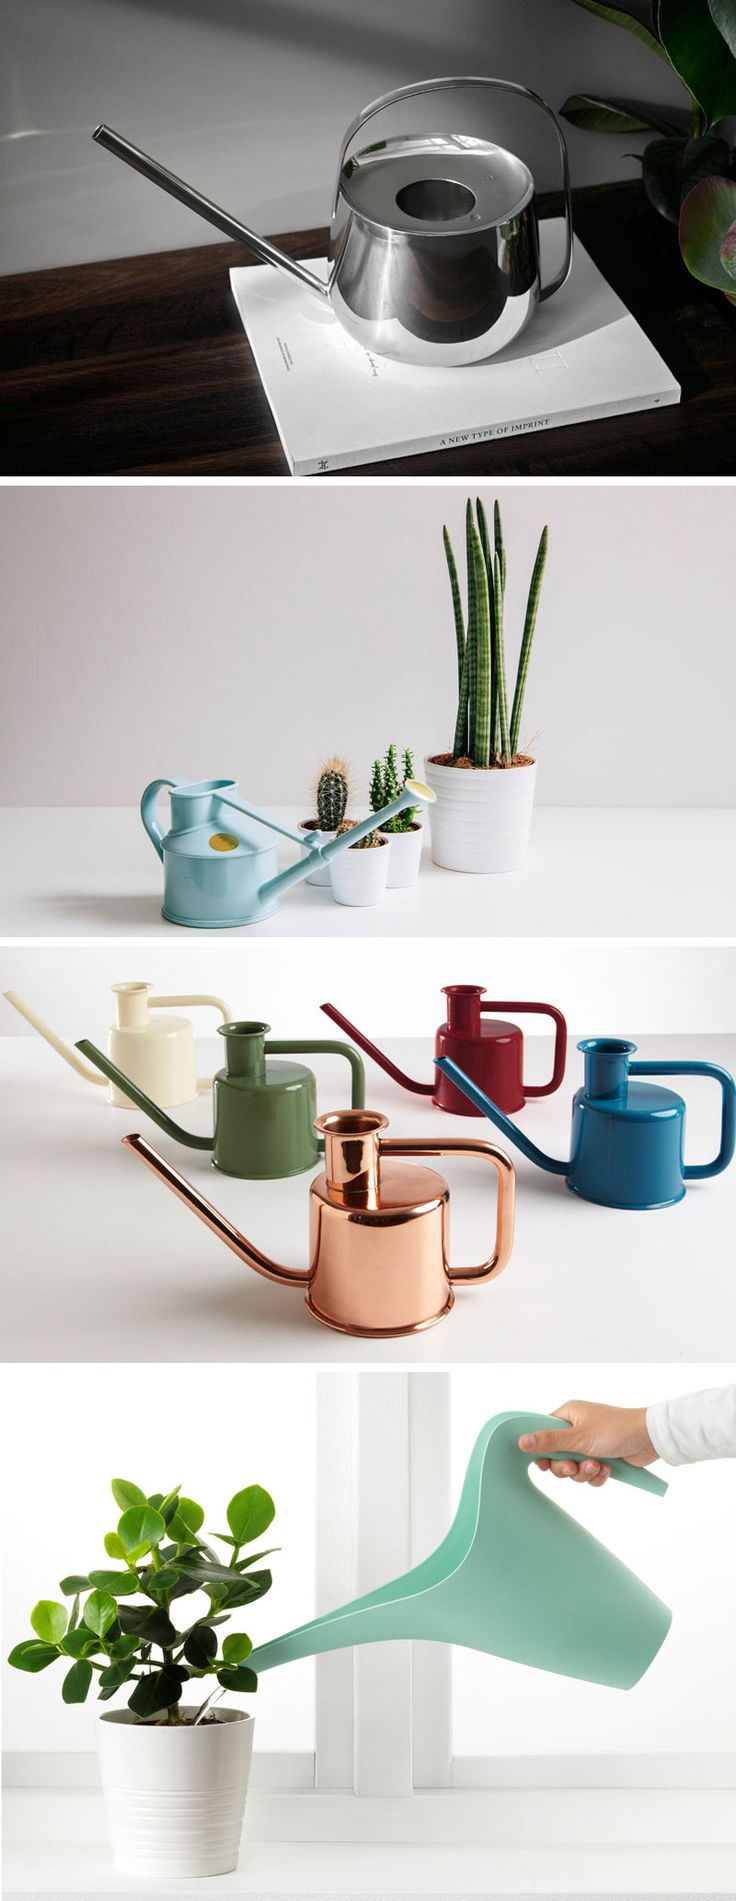 These modern watering cans are perfect for watering the plants in your garden or in the house.